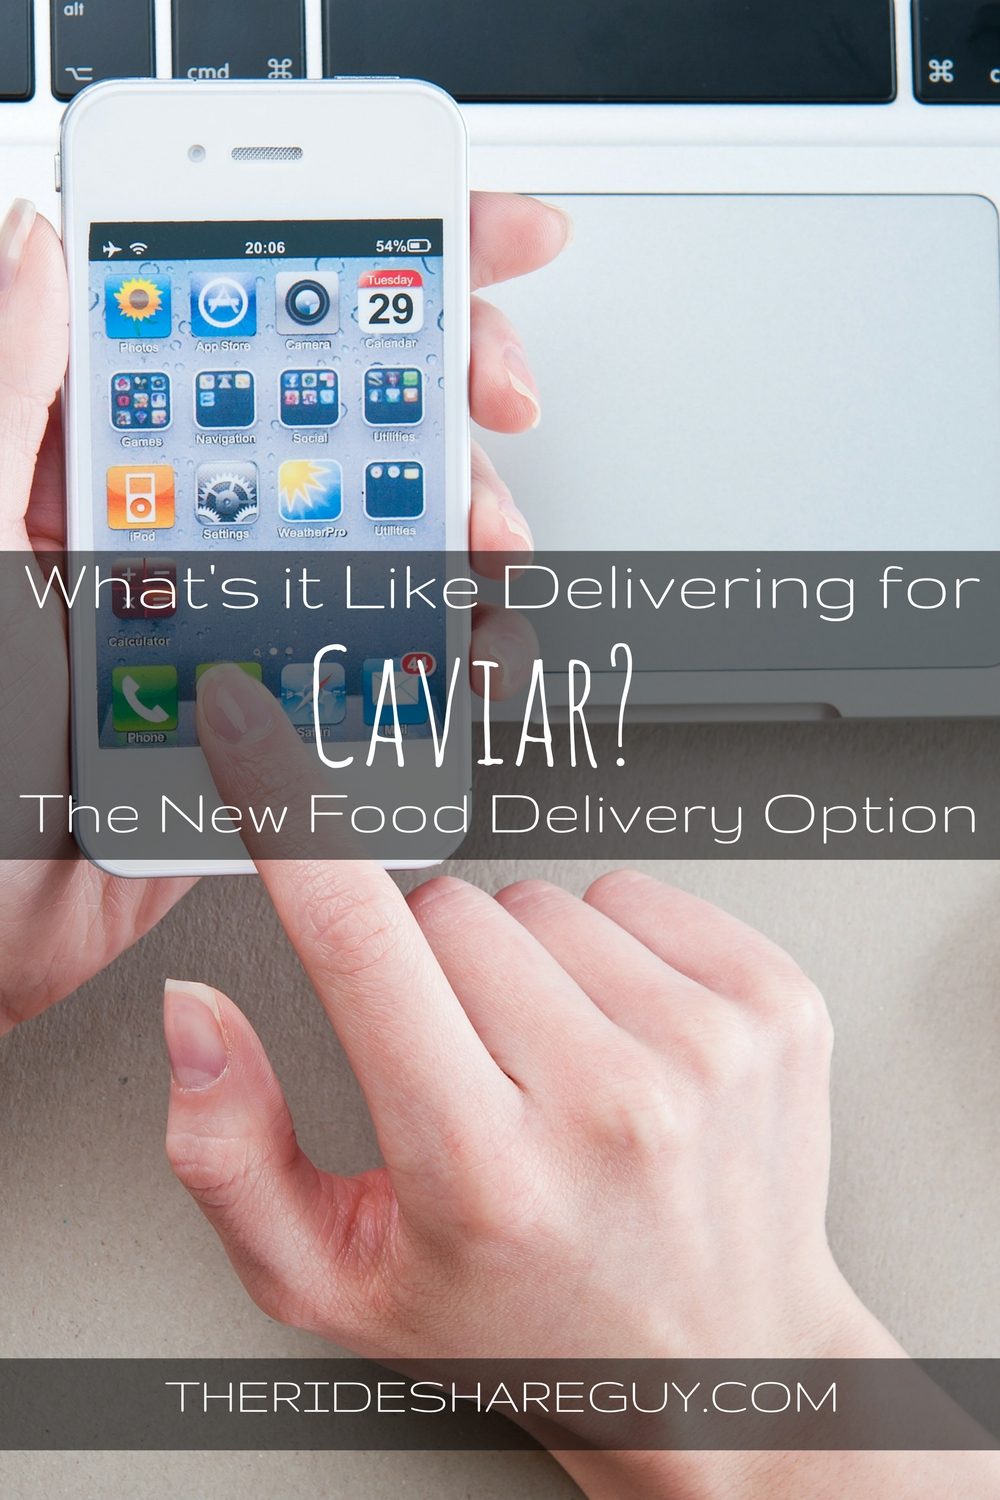 Caviar Driver – What's It Like To Be a Courier for Caviar?